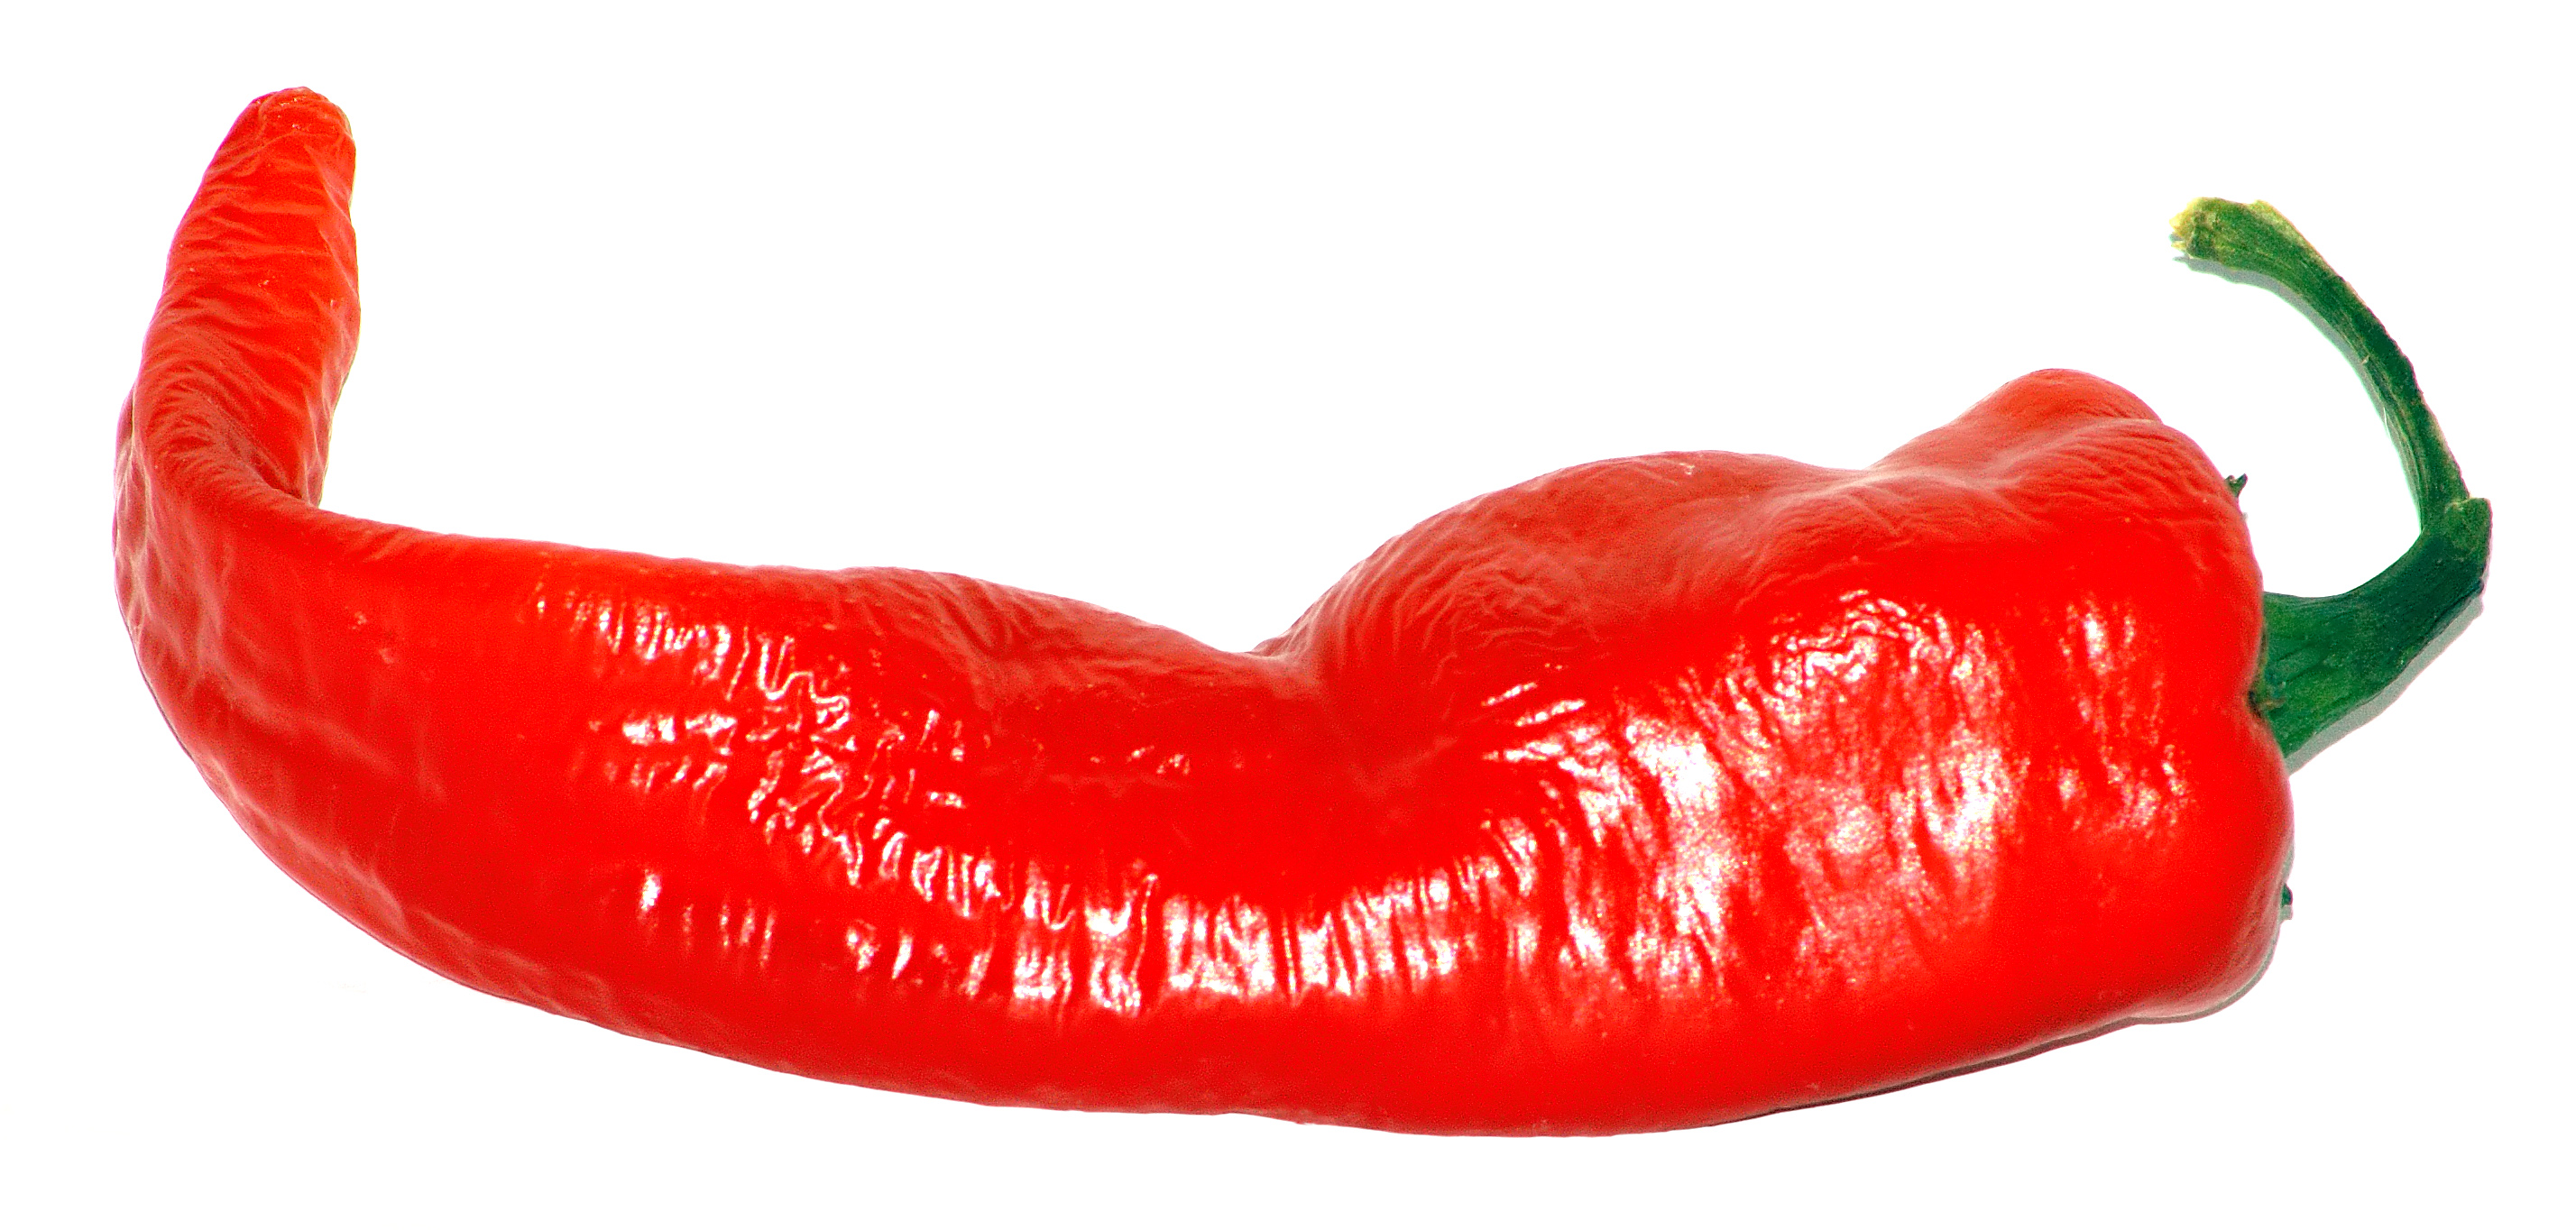 Cayenne pepper by Wikimedia Commons